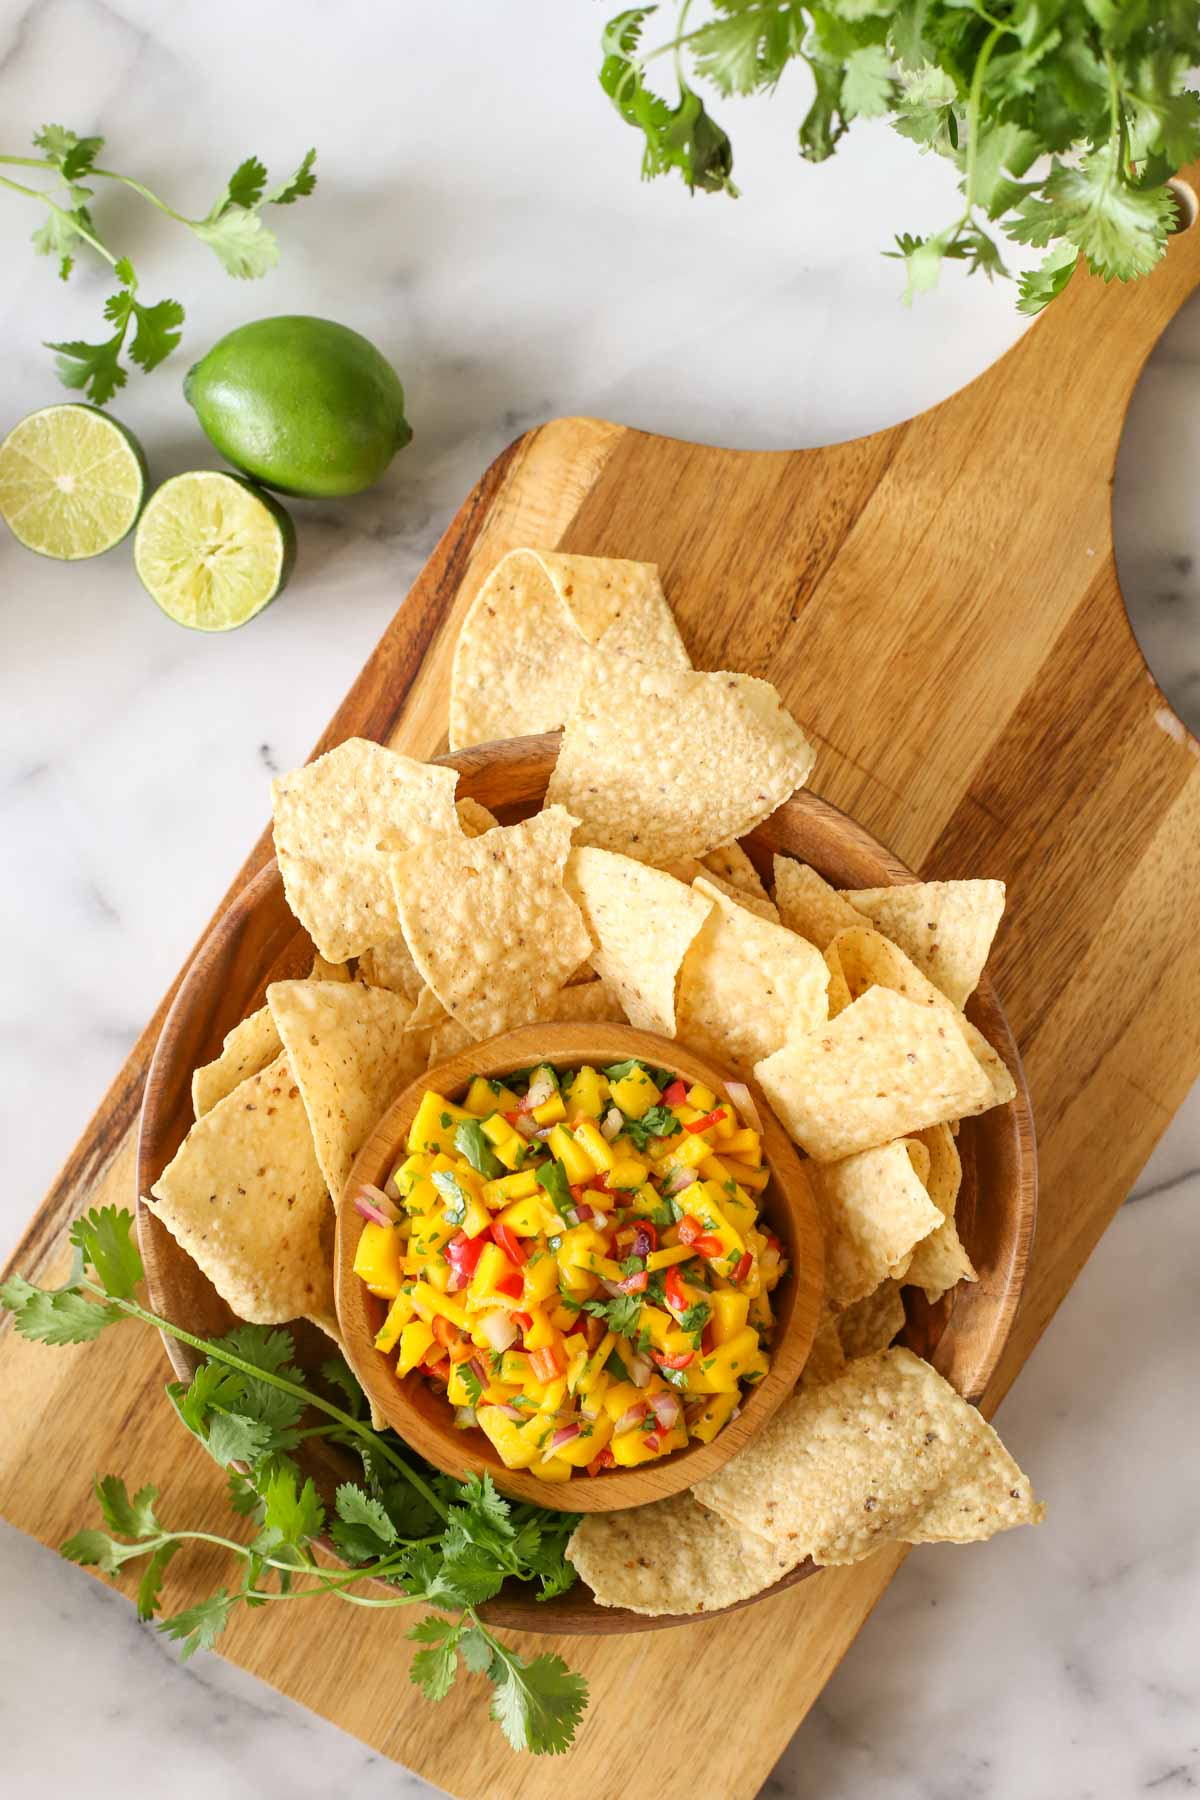 Overhead shot of a wood bowl of Mango Lime Salsa sitting inside a larger wood bowl with tortilla chips and fresh cilantro, all sitting on a wood cutting board with limes and cilantro next to it, all on a marble background.